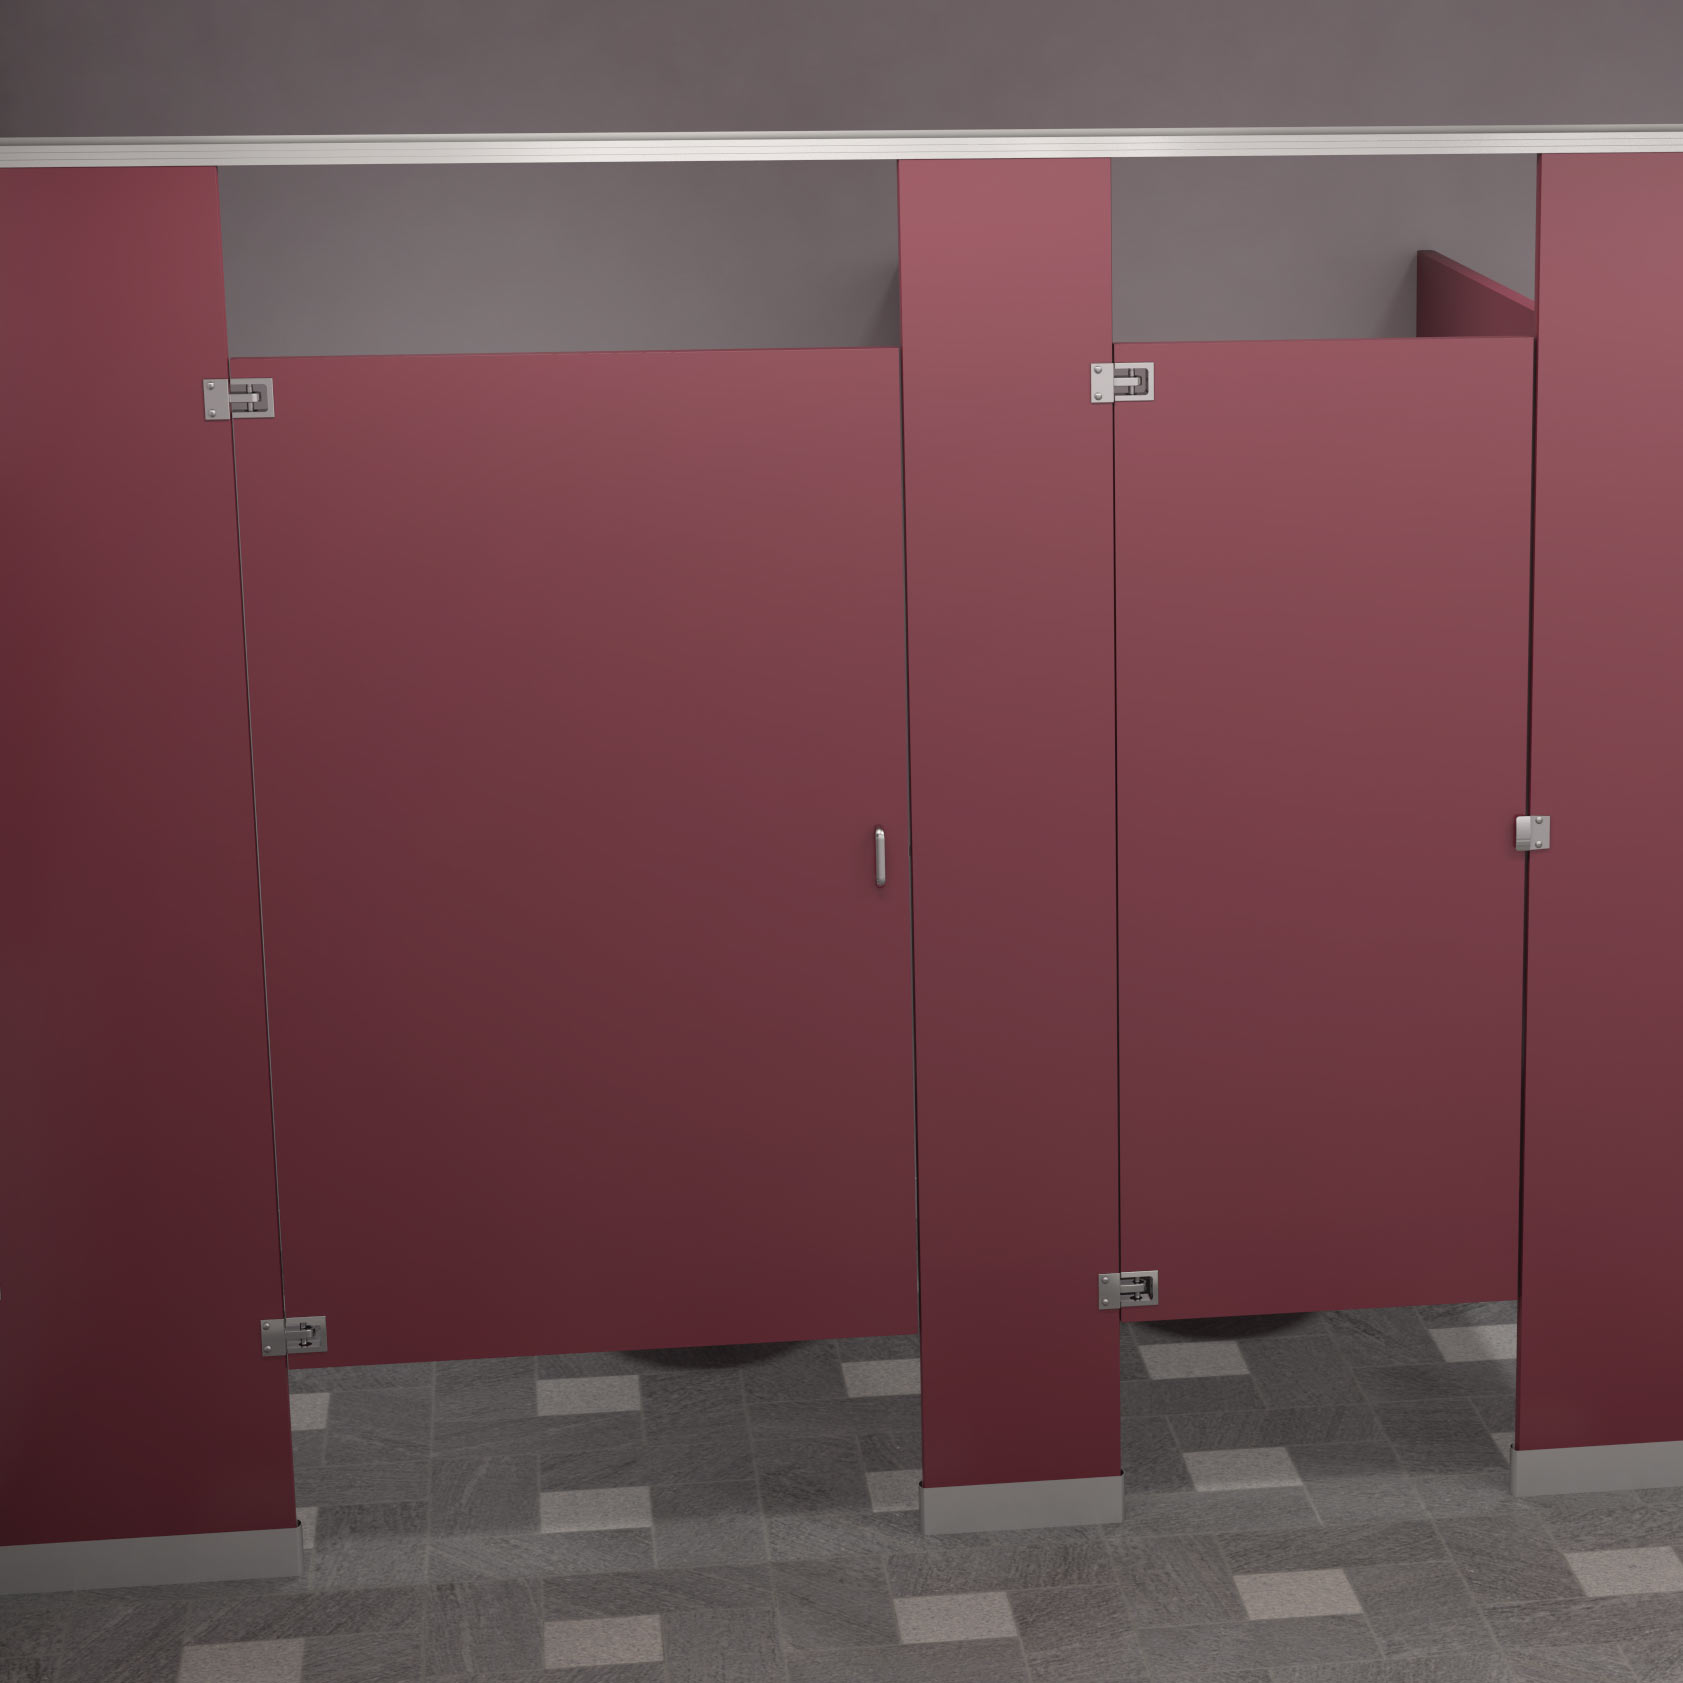 Privacy Compartment Materials For Public Restrooms - Public bathroom partitions